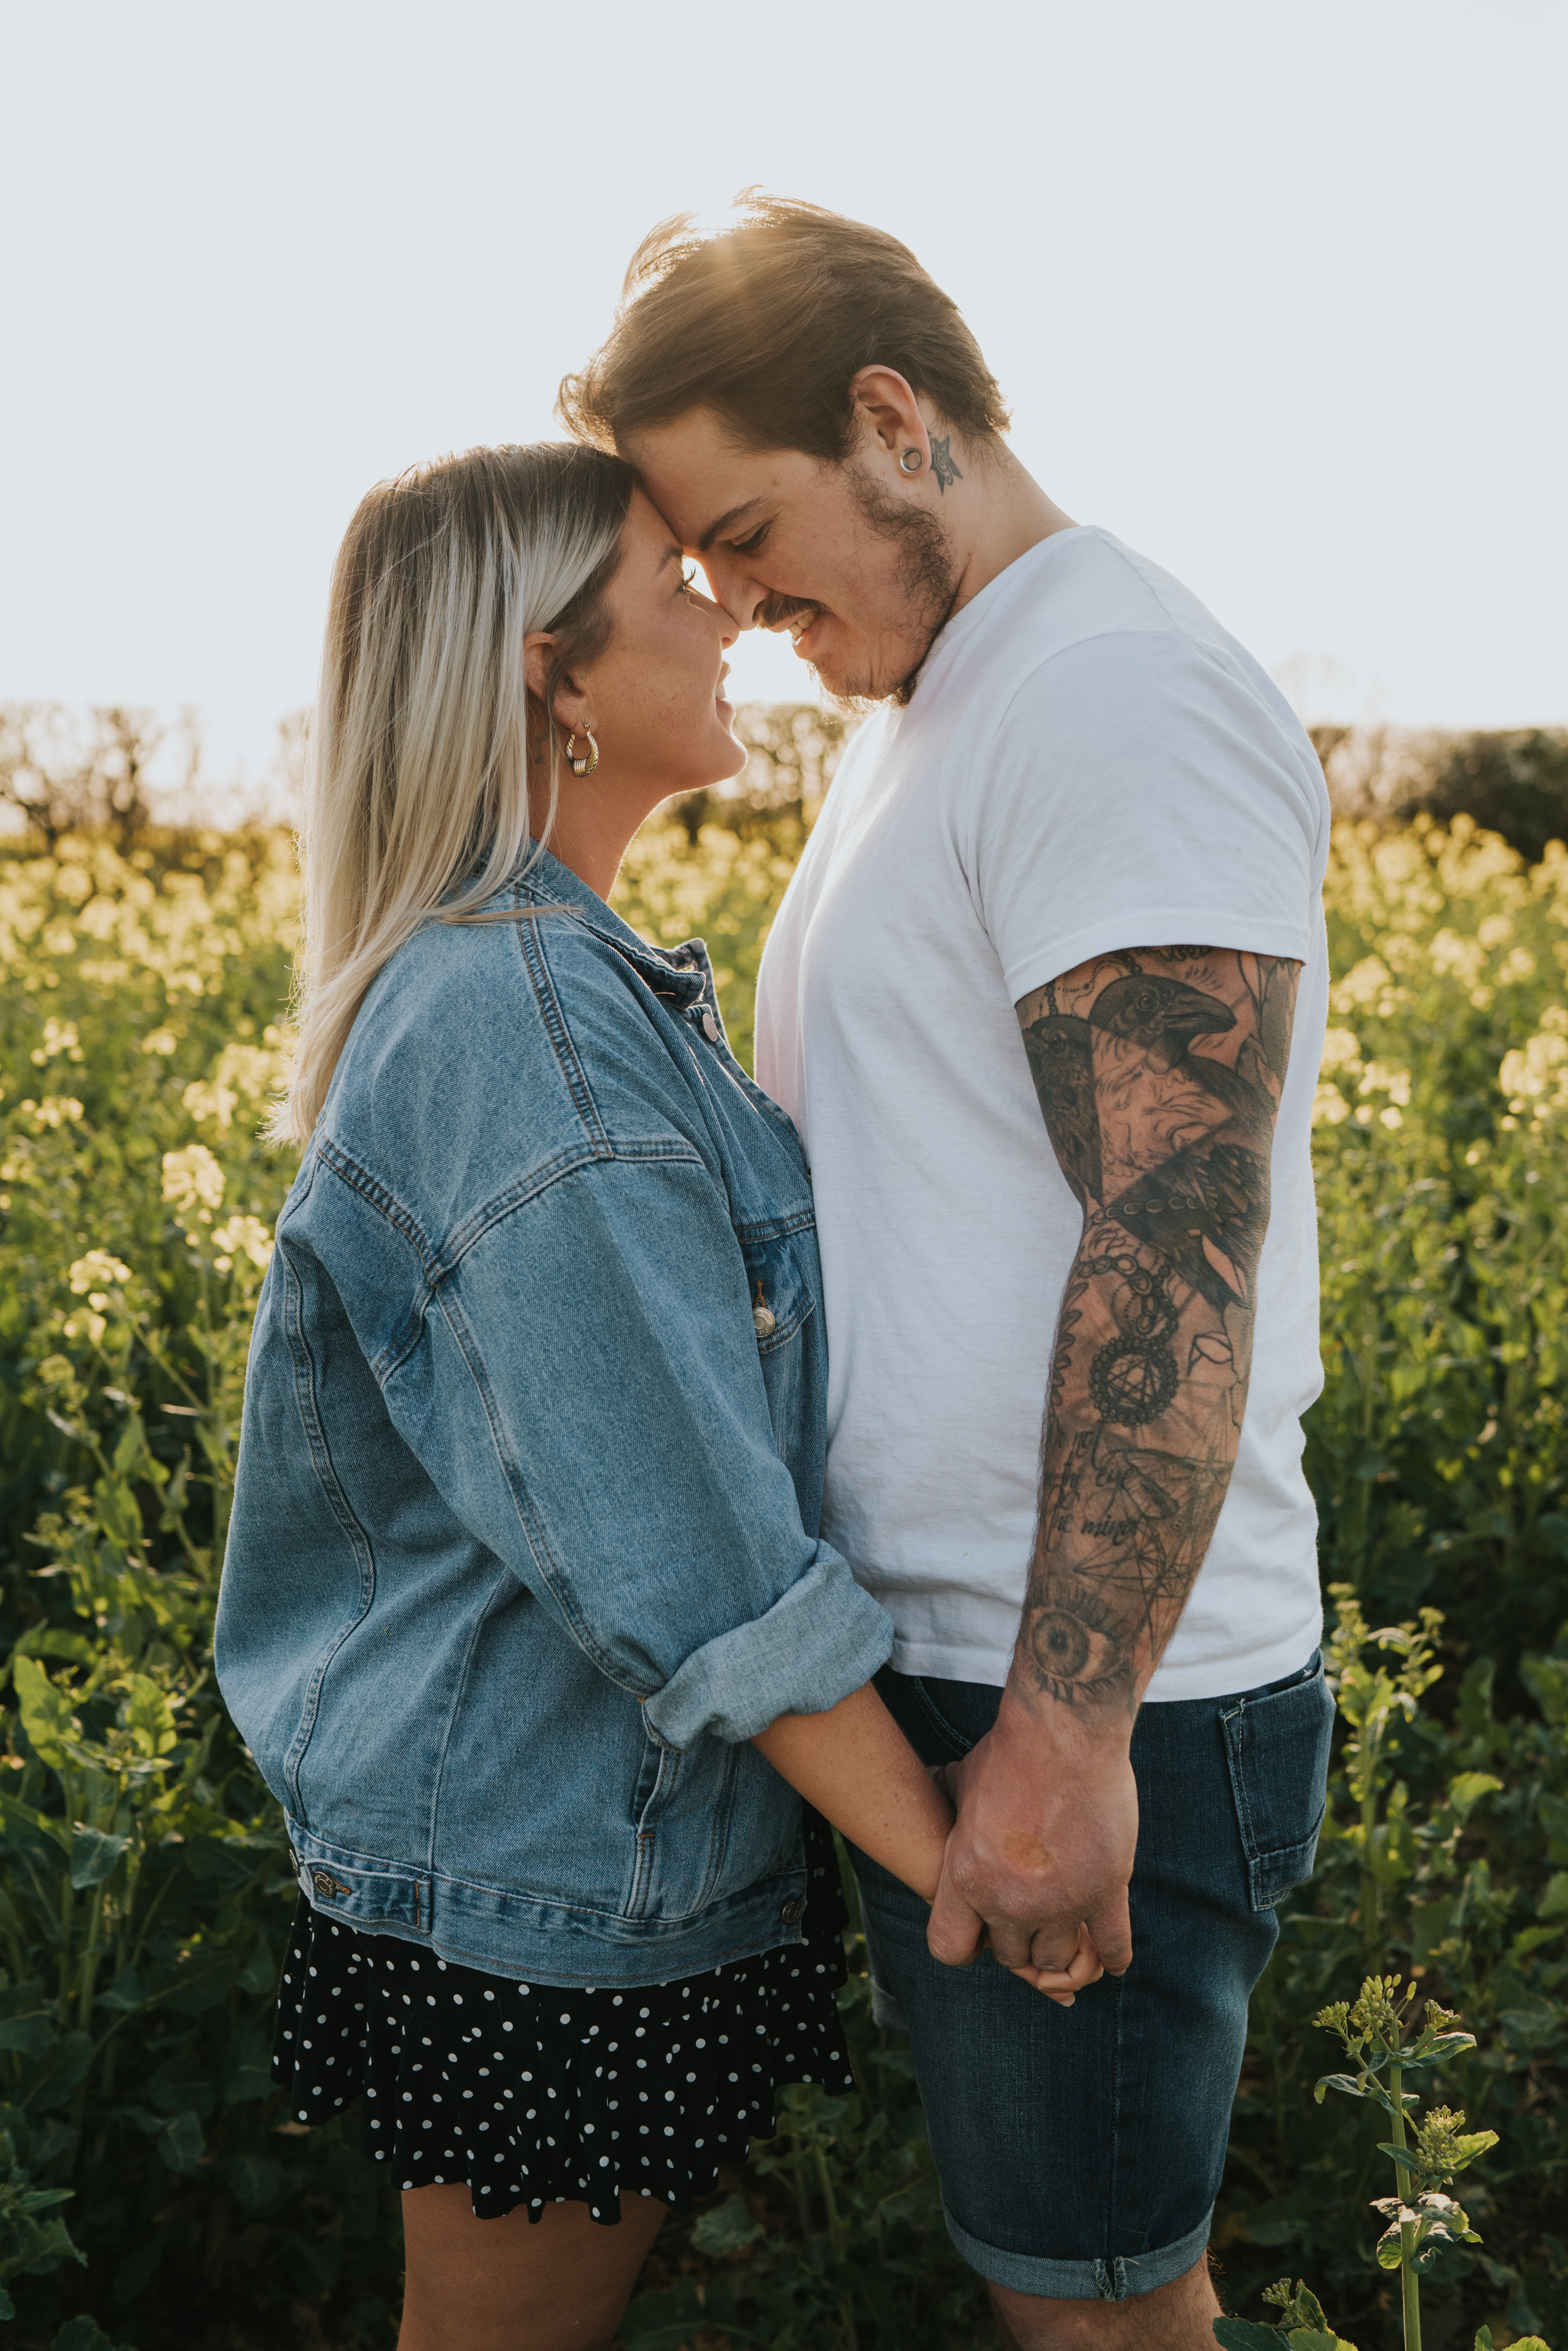 chloe-dan-pre-wedding-engagement-session-countryside-grace-elizabeth-colchester-essex-alternative-wedding-lifestyle-photographer-suffolk-norfolk-devon (8 of 50).jpg